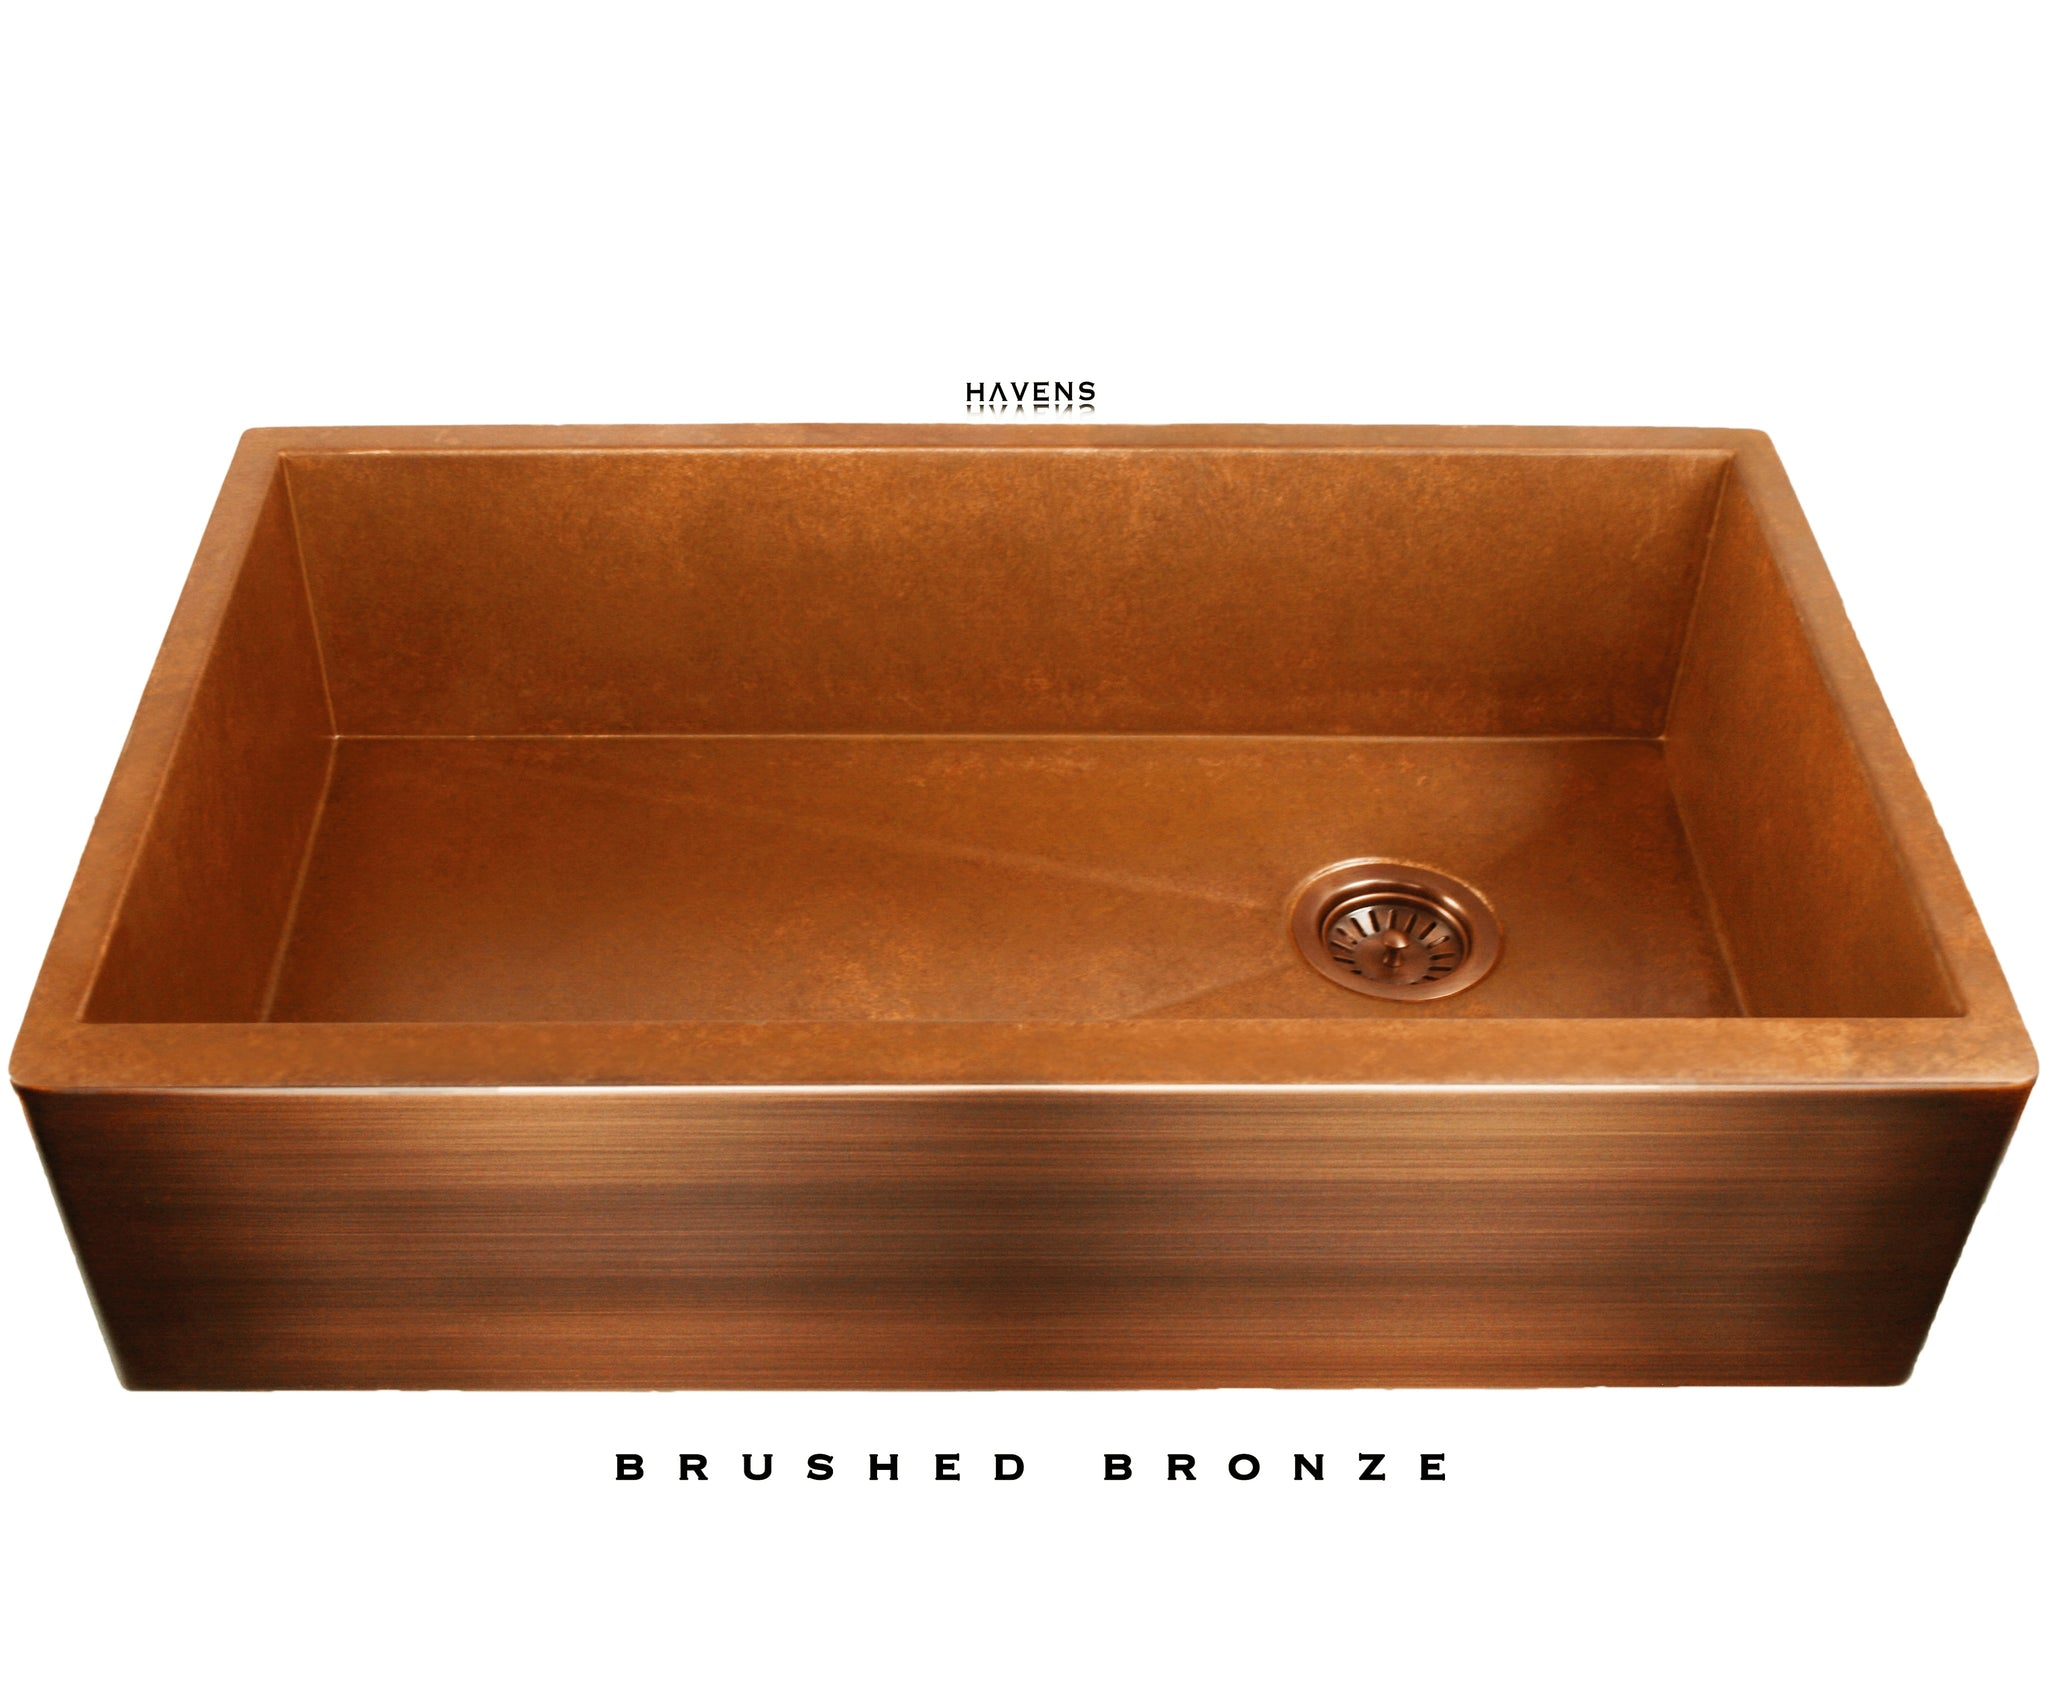 Heritage copper farm style sink with a beautiful patina apron front.